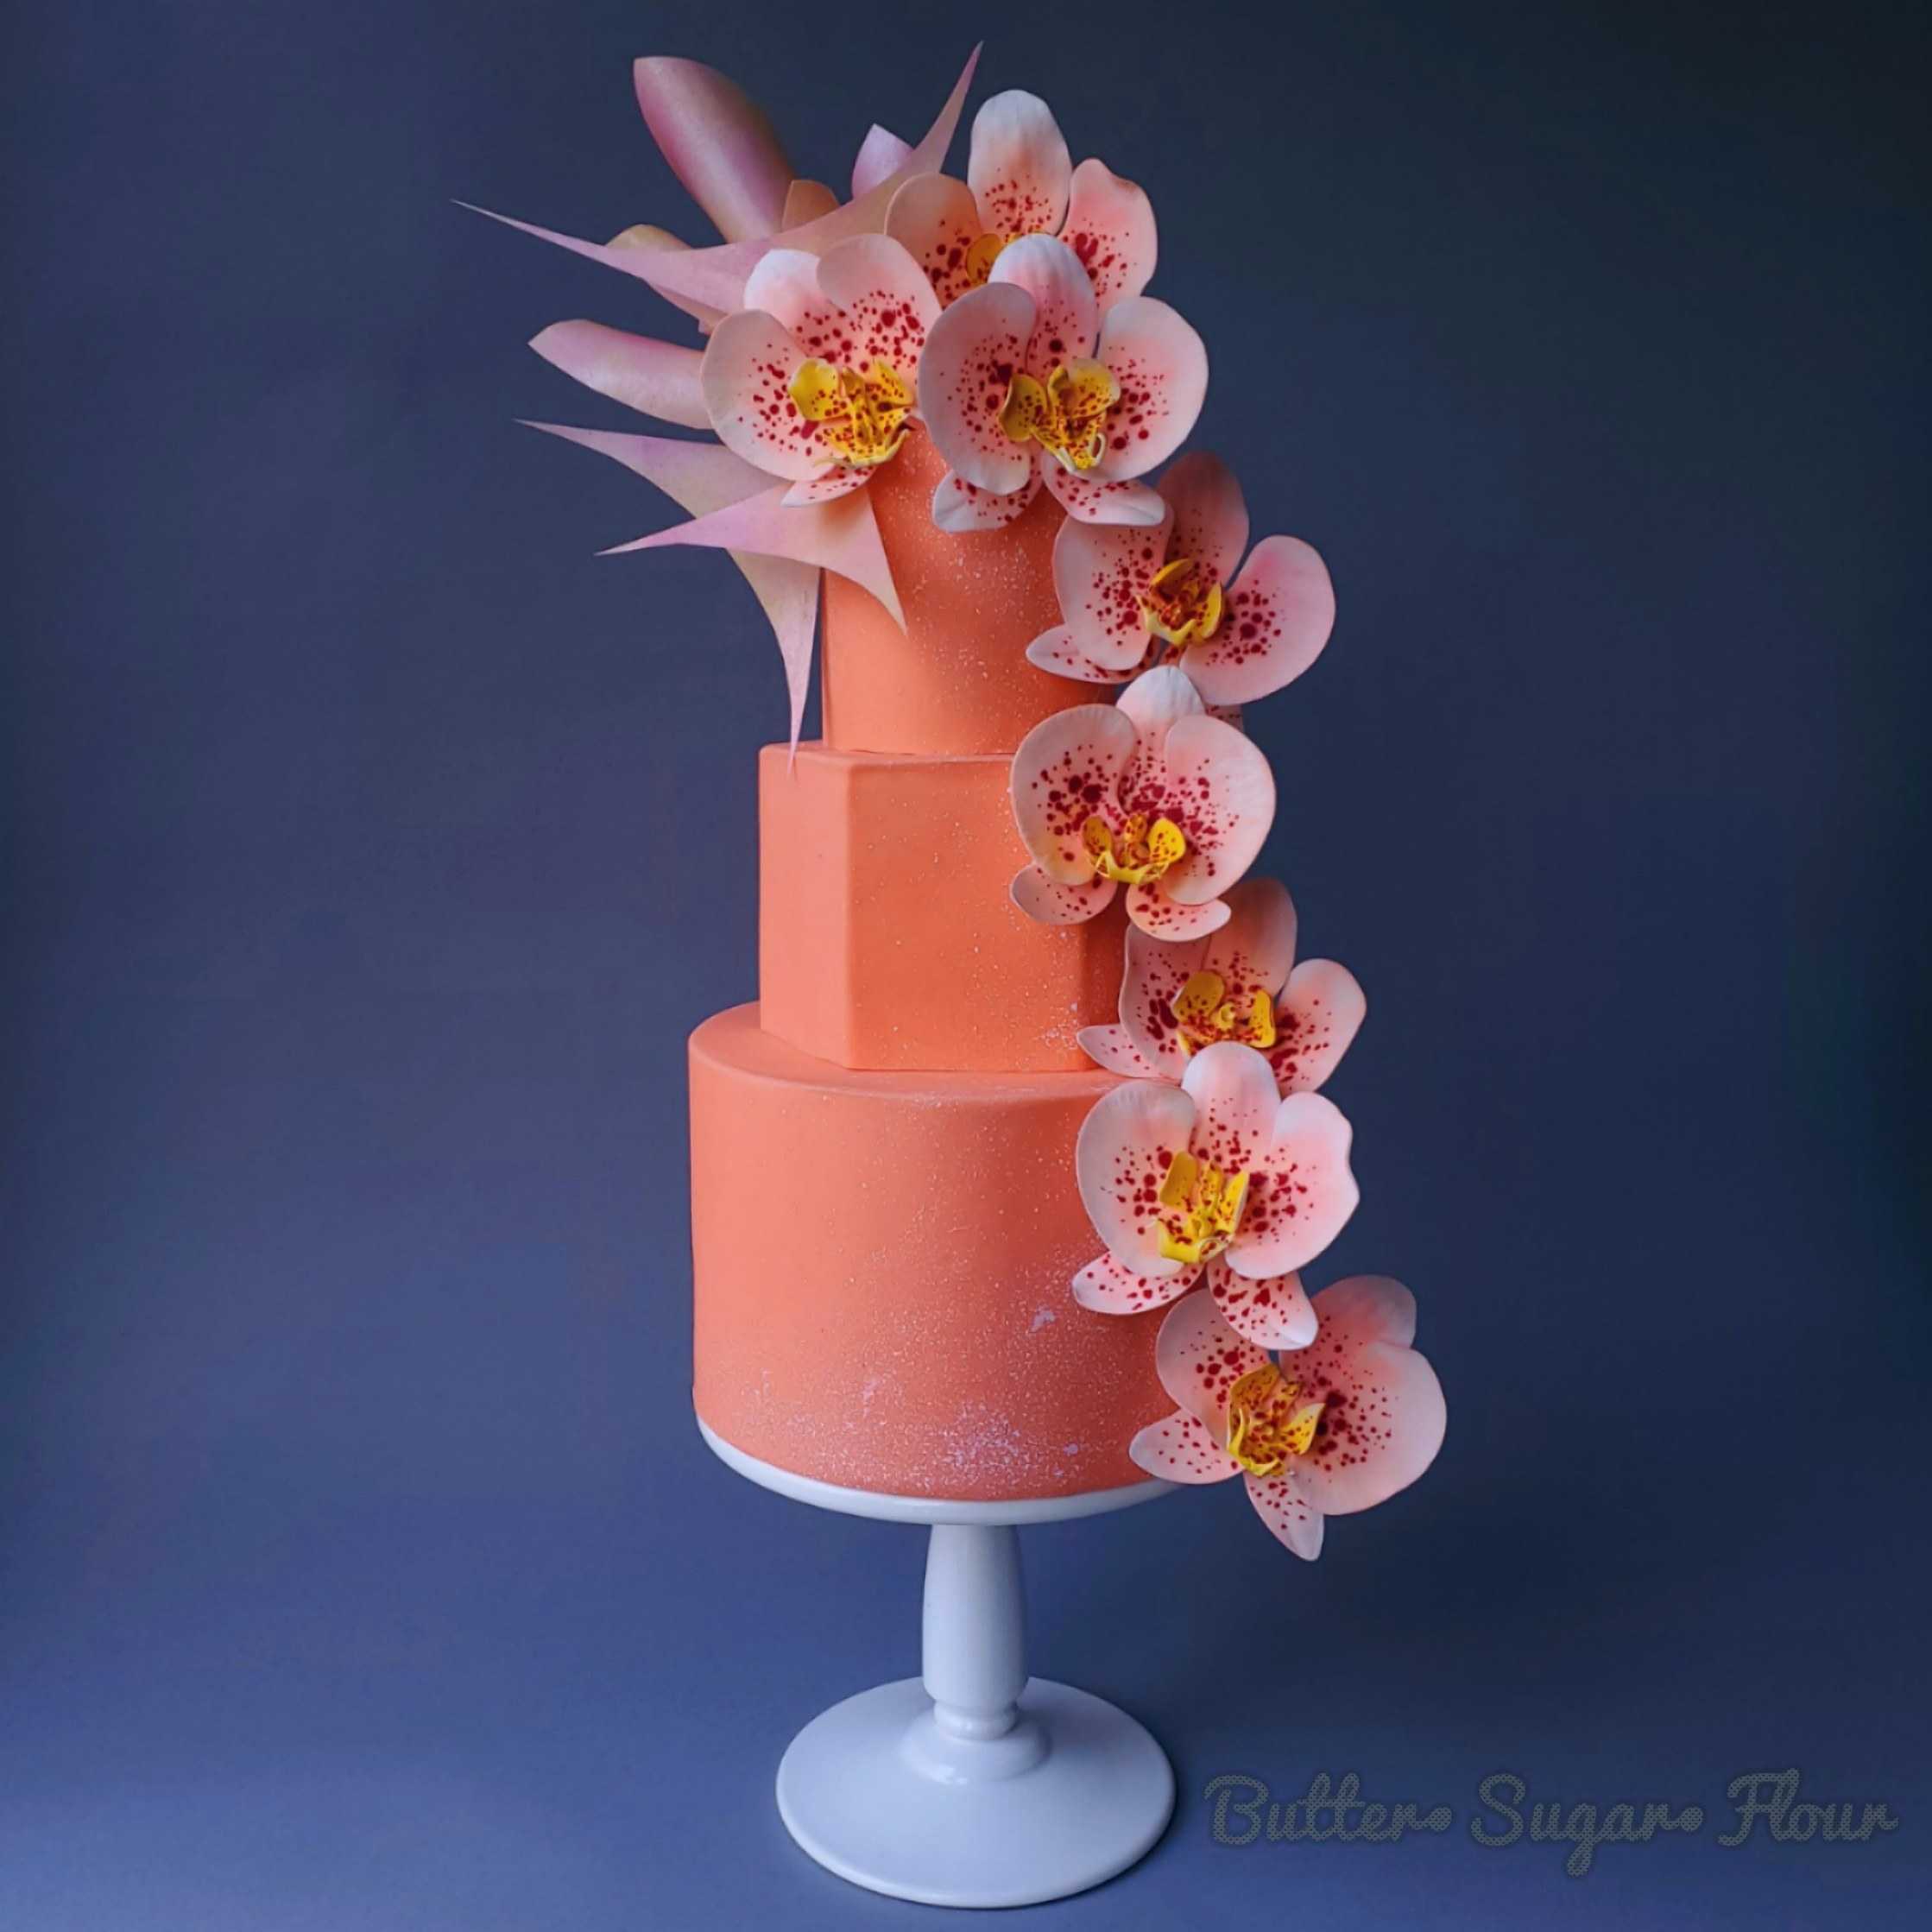 All coral fondant wedding cake